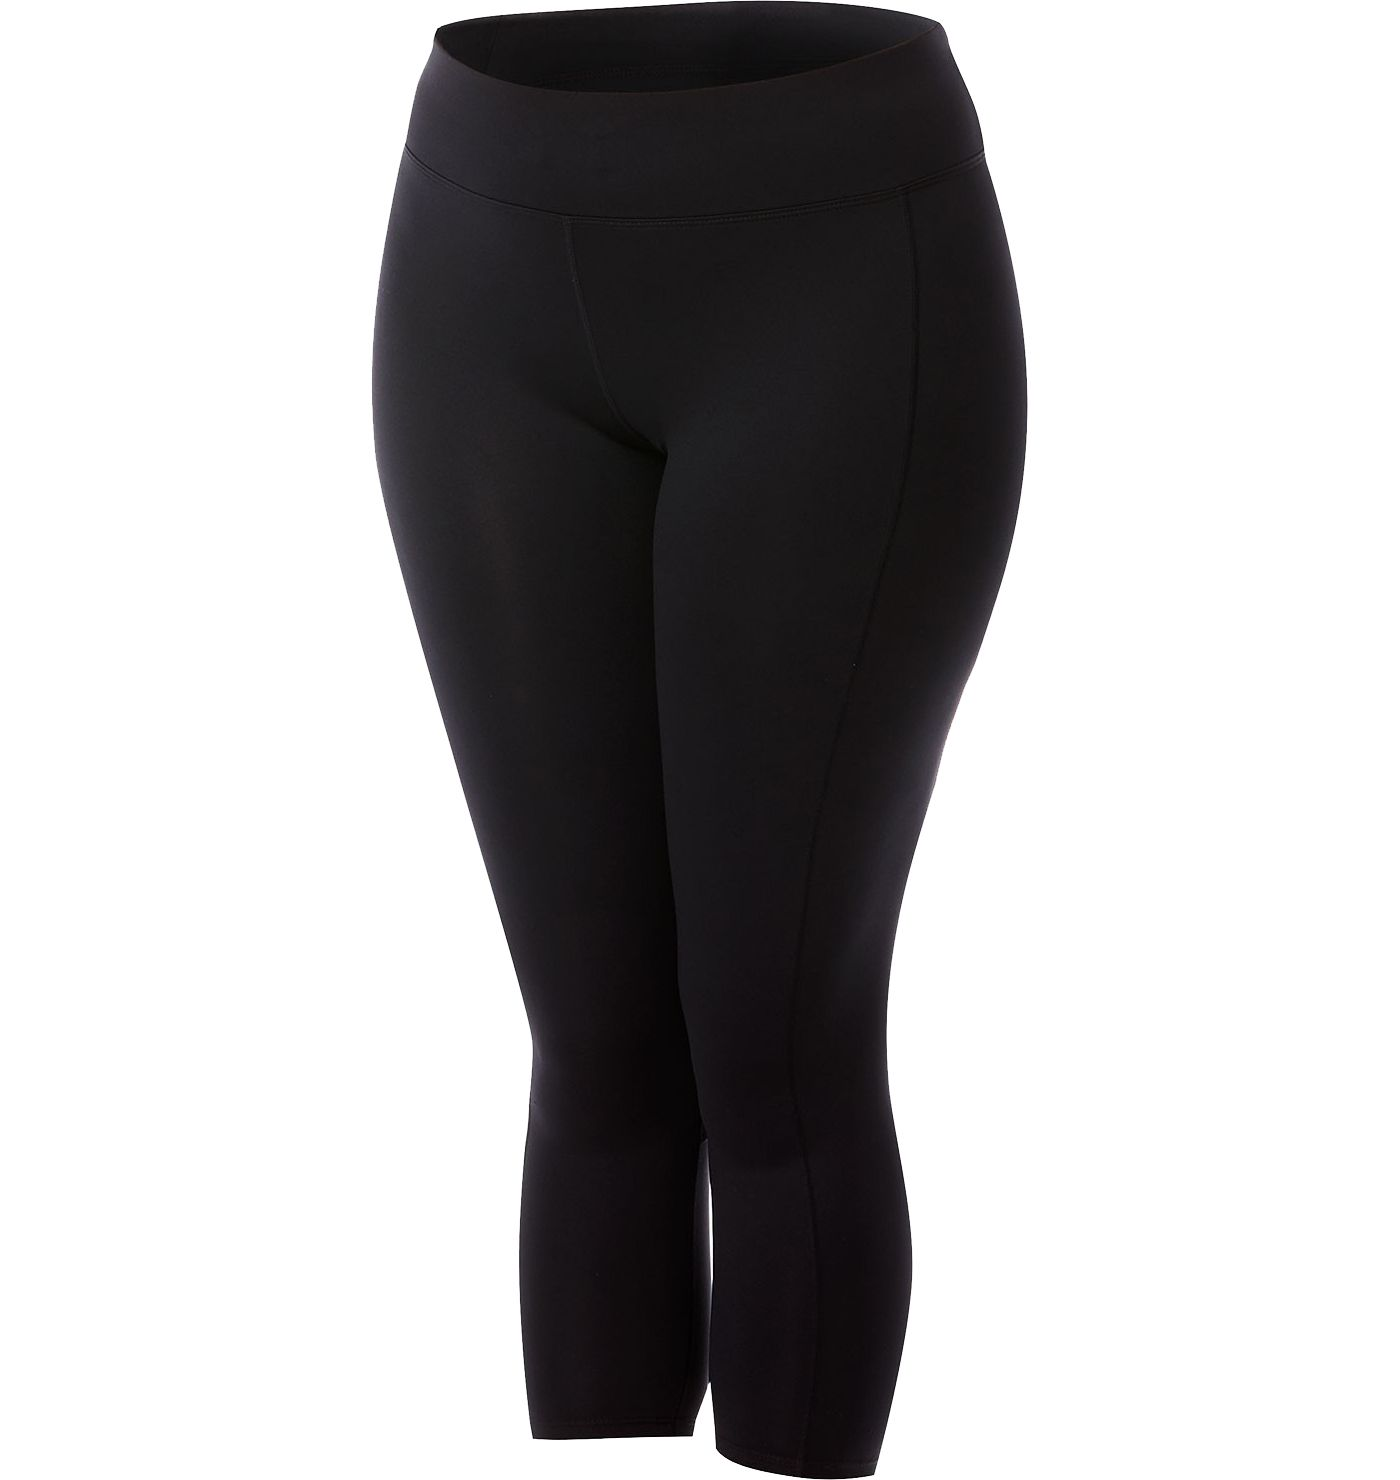 TYR Women's Plus Size ¾ Kalanti Swim Tights